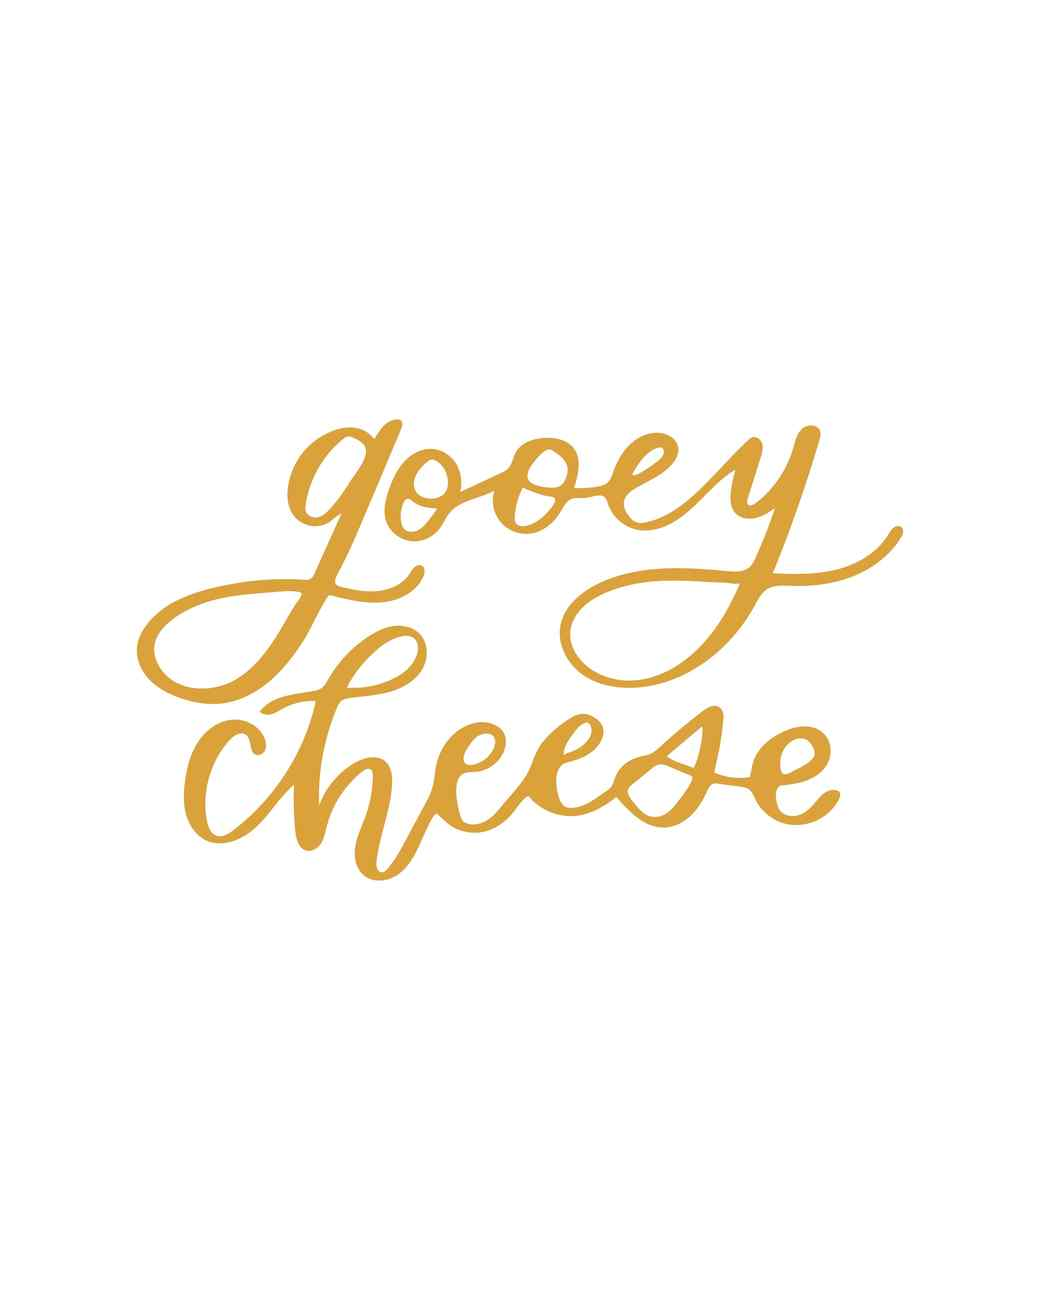 """gooey cheese"" calligraphy"